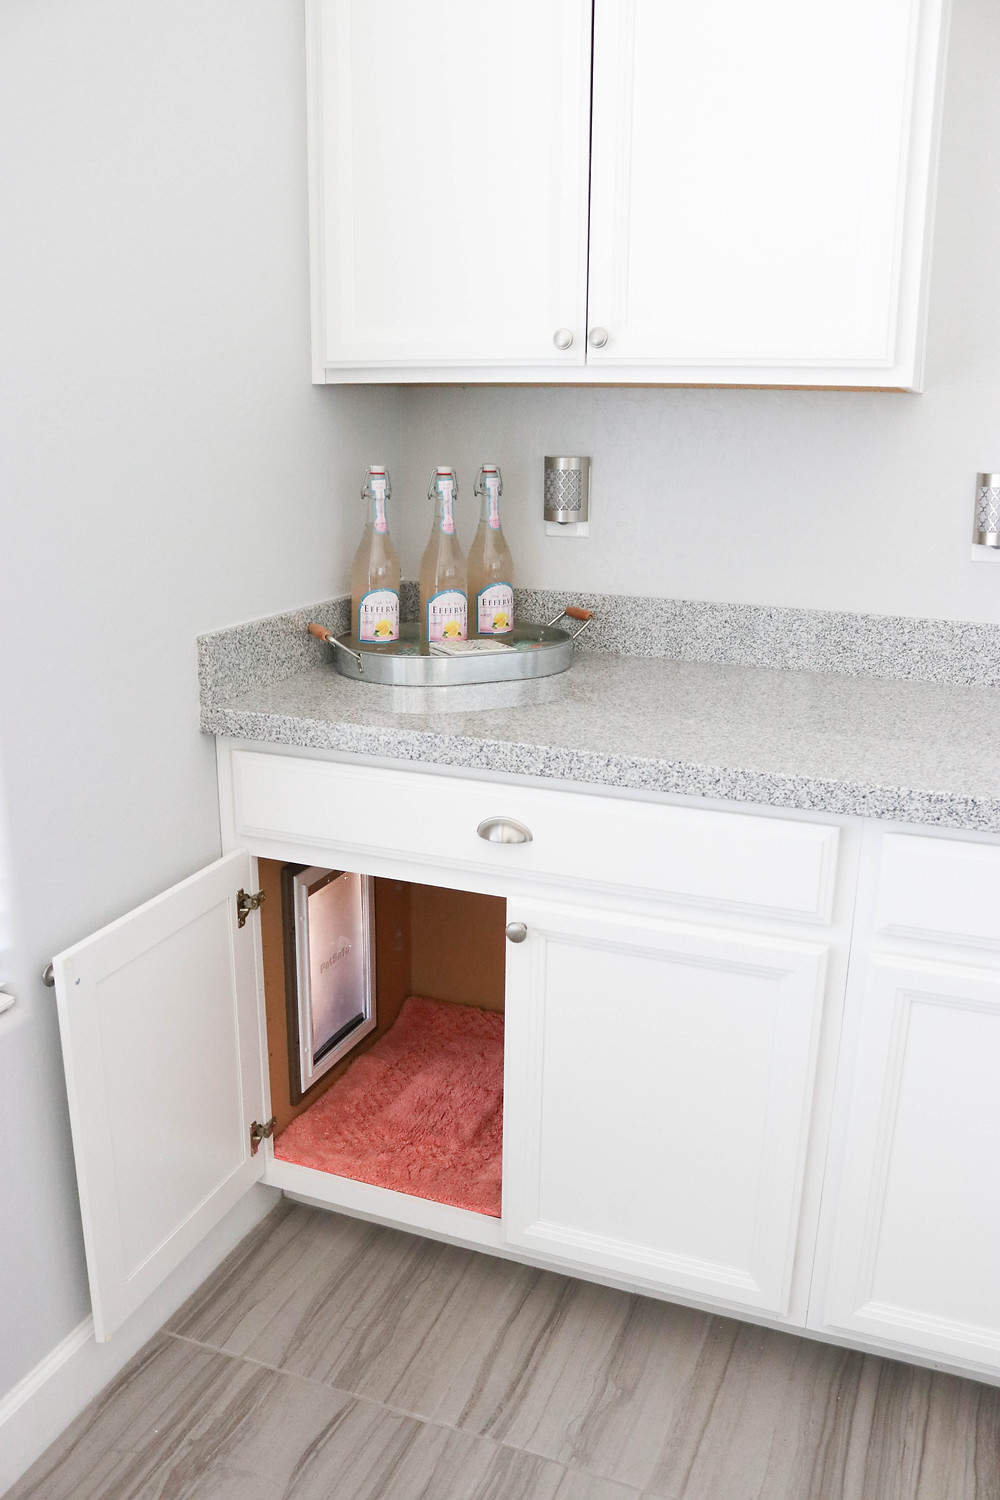 2018 Hidden Dog Door - Hidden Doggy Door - Hidden Dog Door in Cabinets